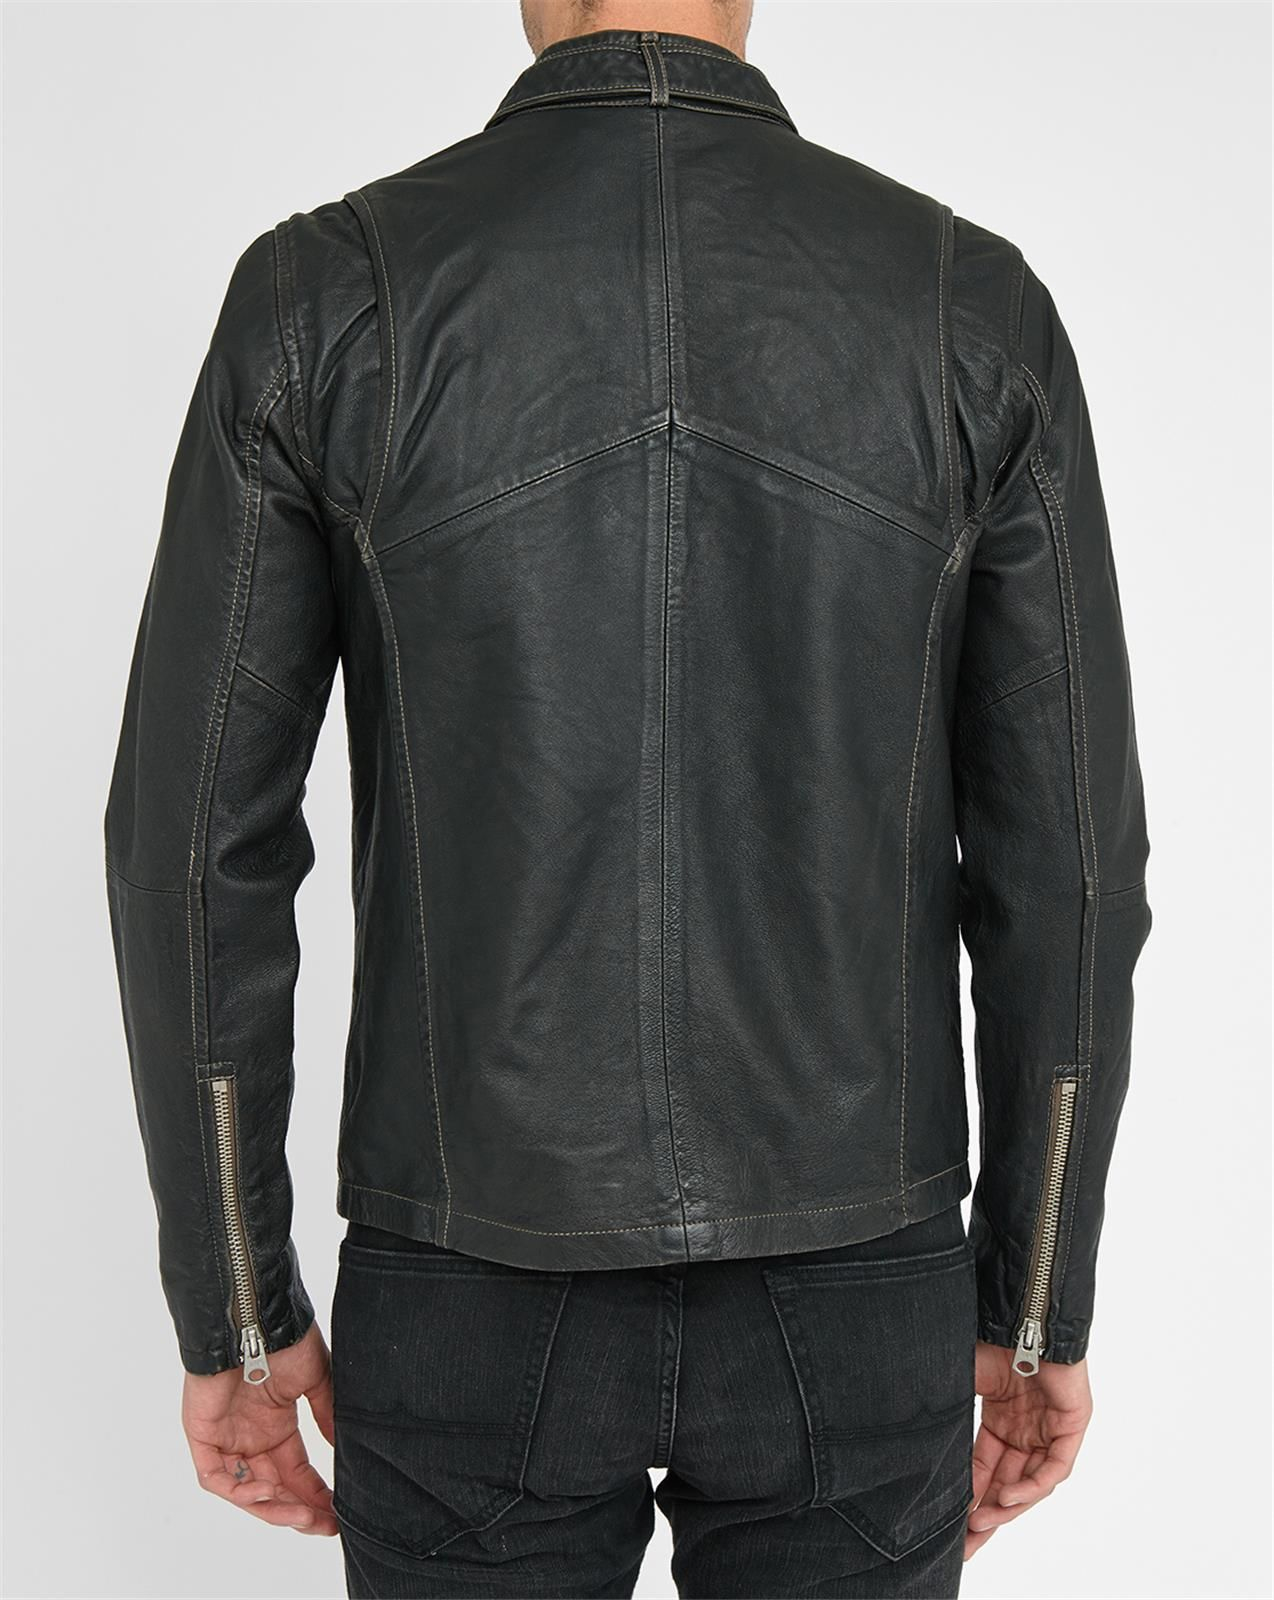 g star raw black engine leather zipped jacket with press stud collar in black for men lyst. Black Bedroom Furniture Sets. Home Design Ideas